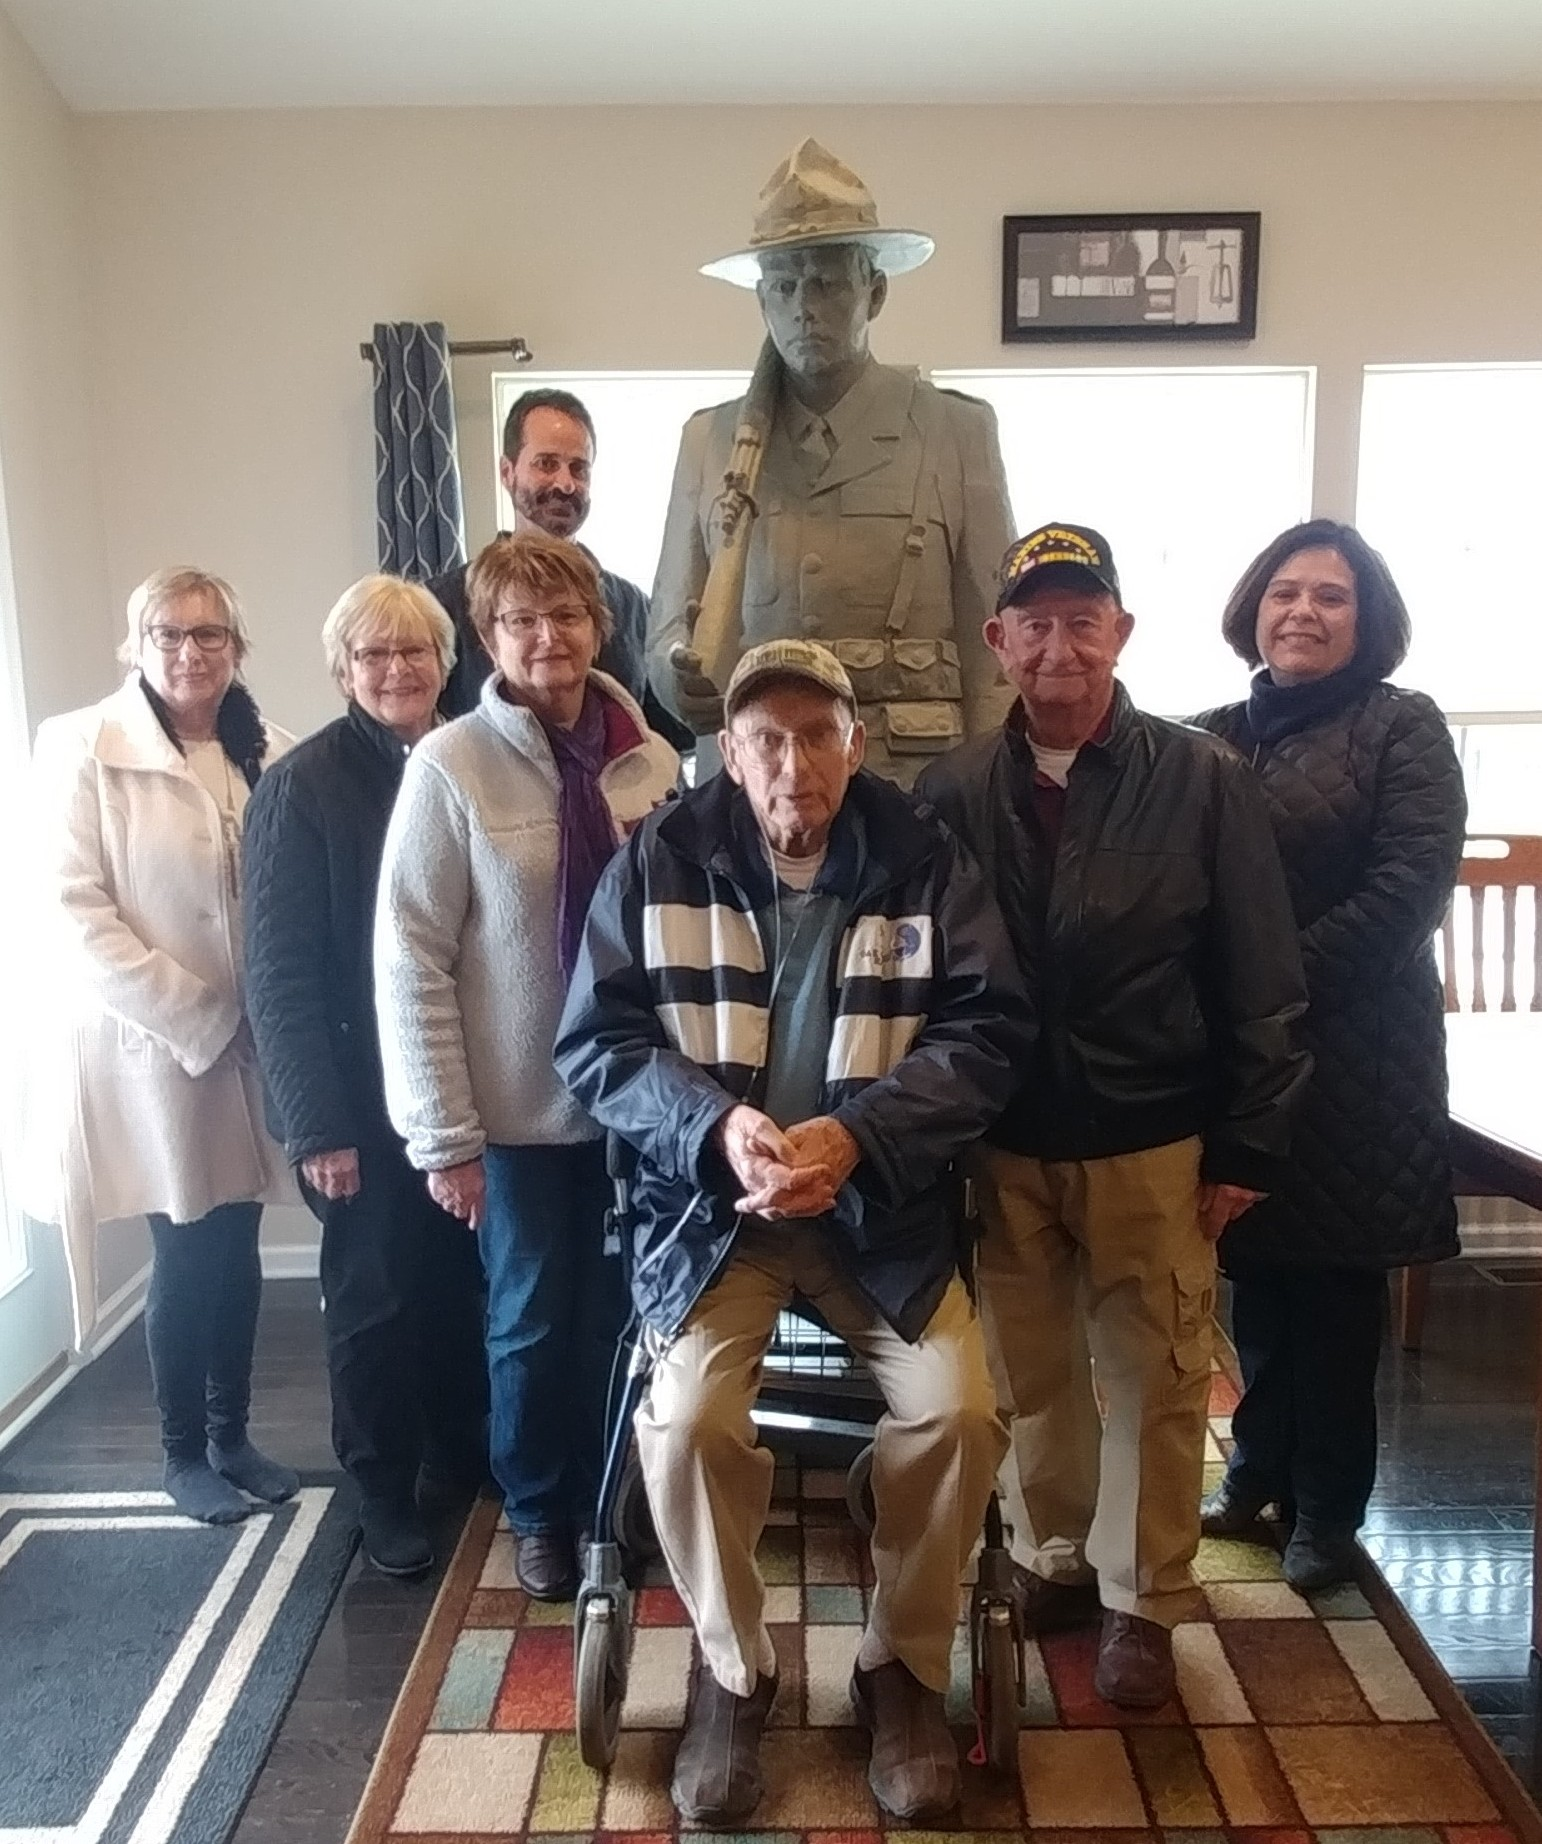 Co F Committee with Sculptor Brian Porter